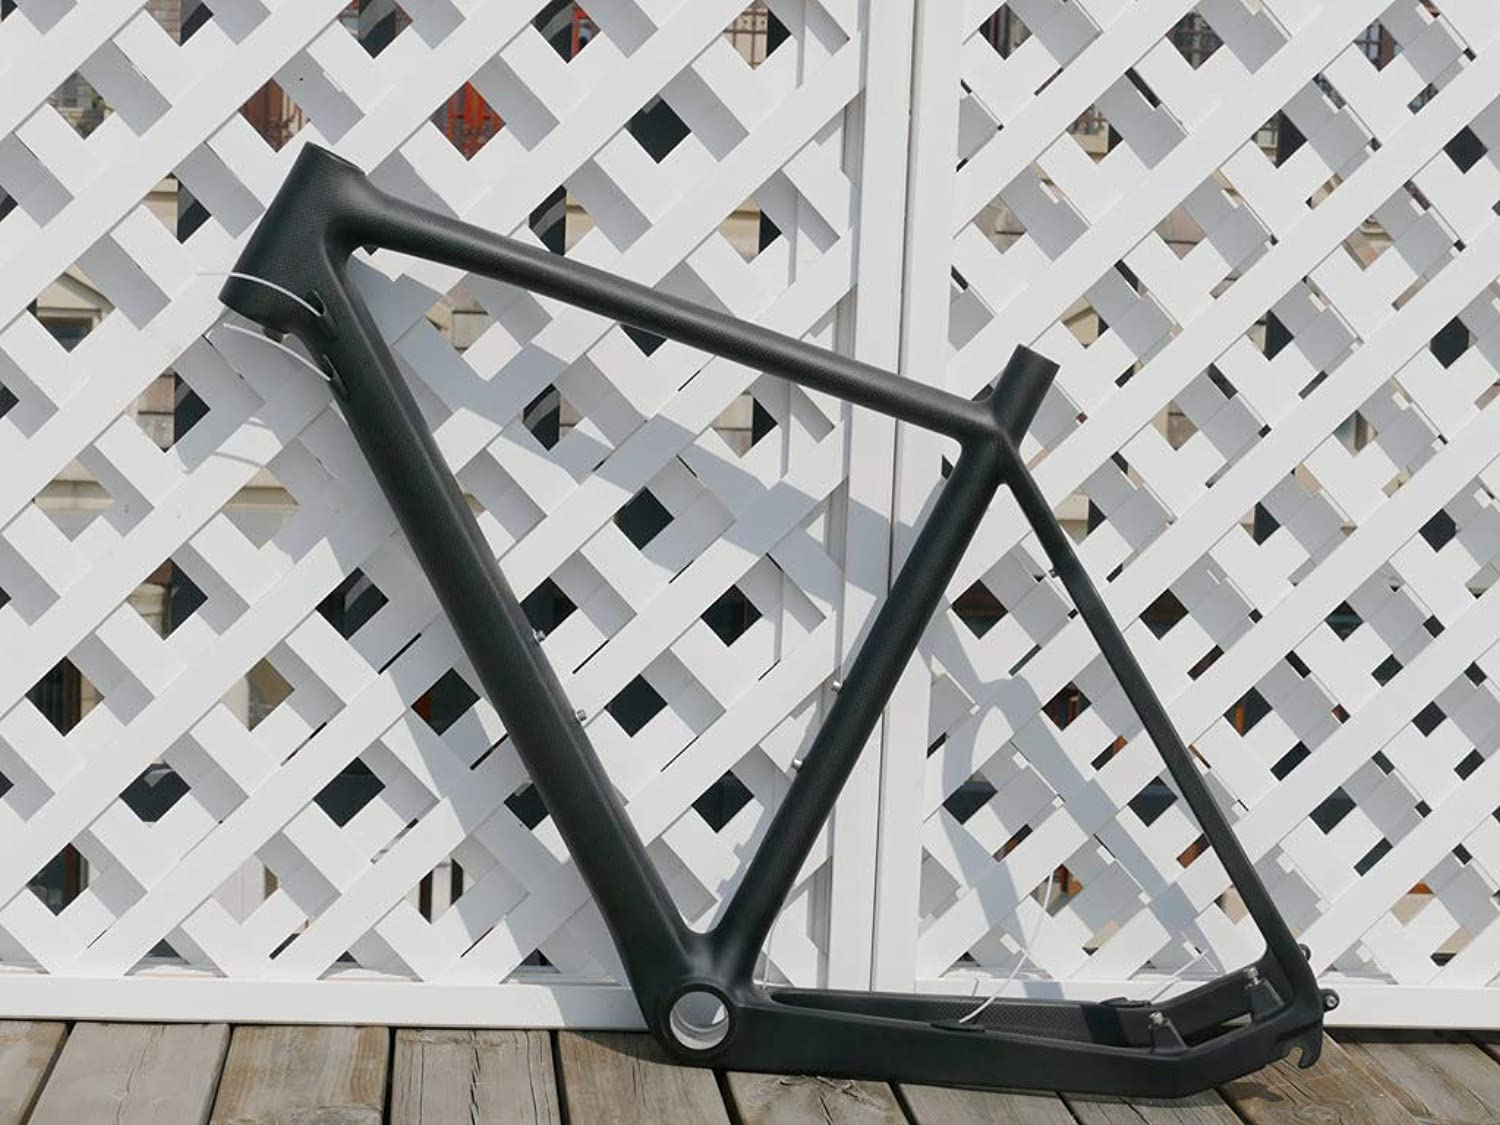 Flyxii UD Carbon Glossy Cyclocross Bike Frame CX Bicycle Frame 55cm Cross Frame for BB30